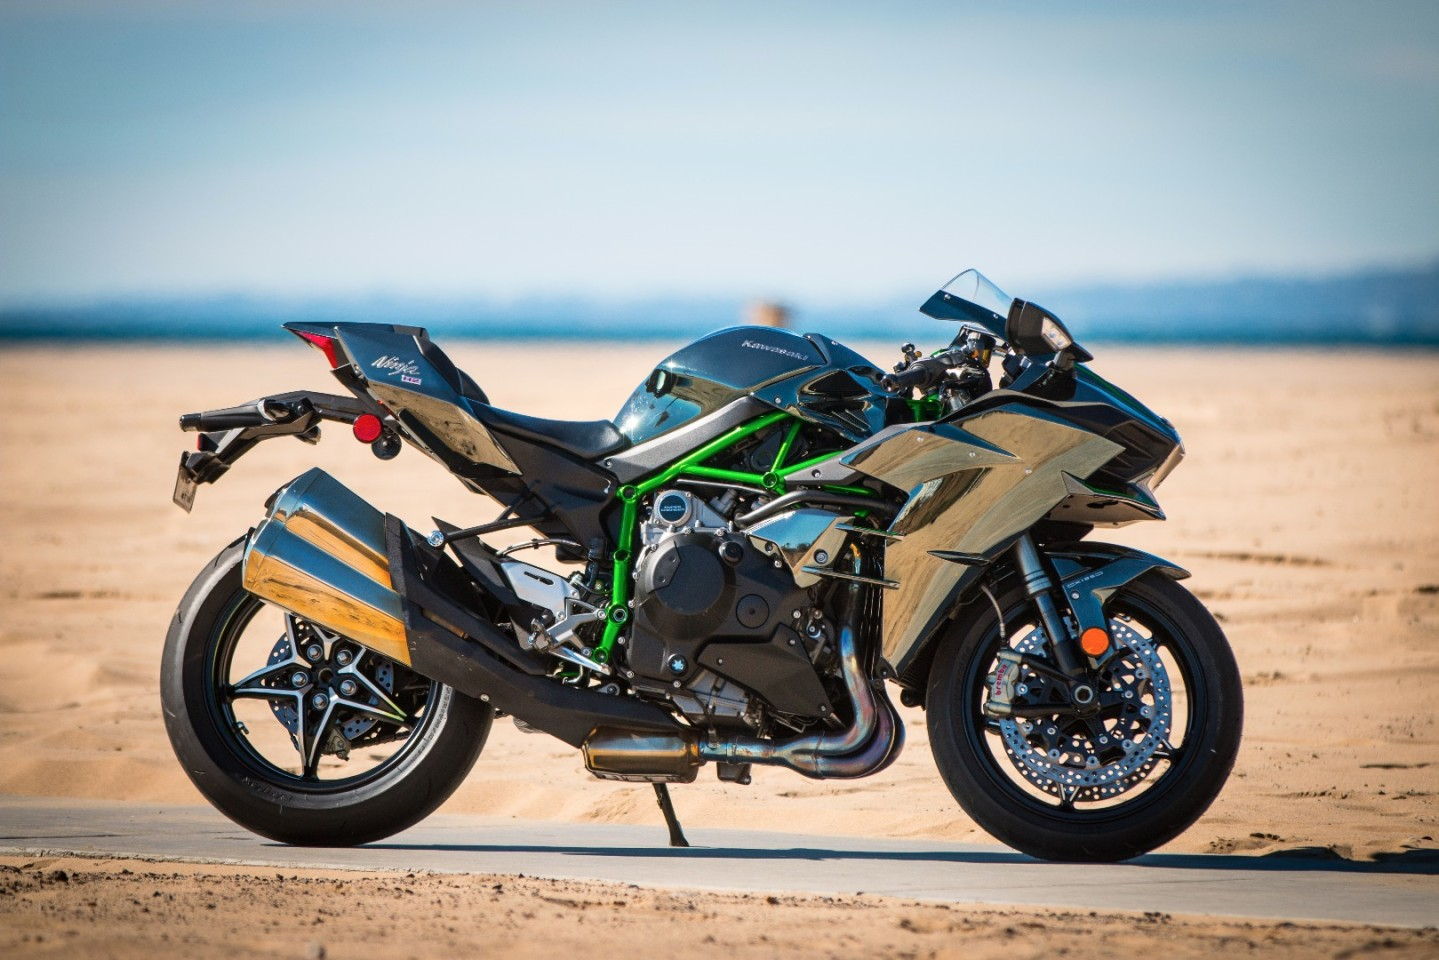 Kawasaki H2: a glorious thing to look at, and even more stunning to twist the throttle on